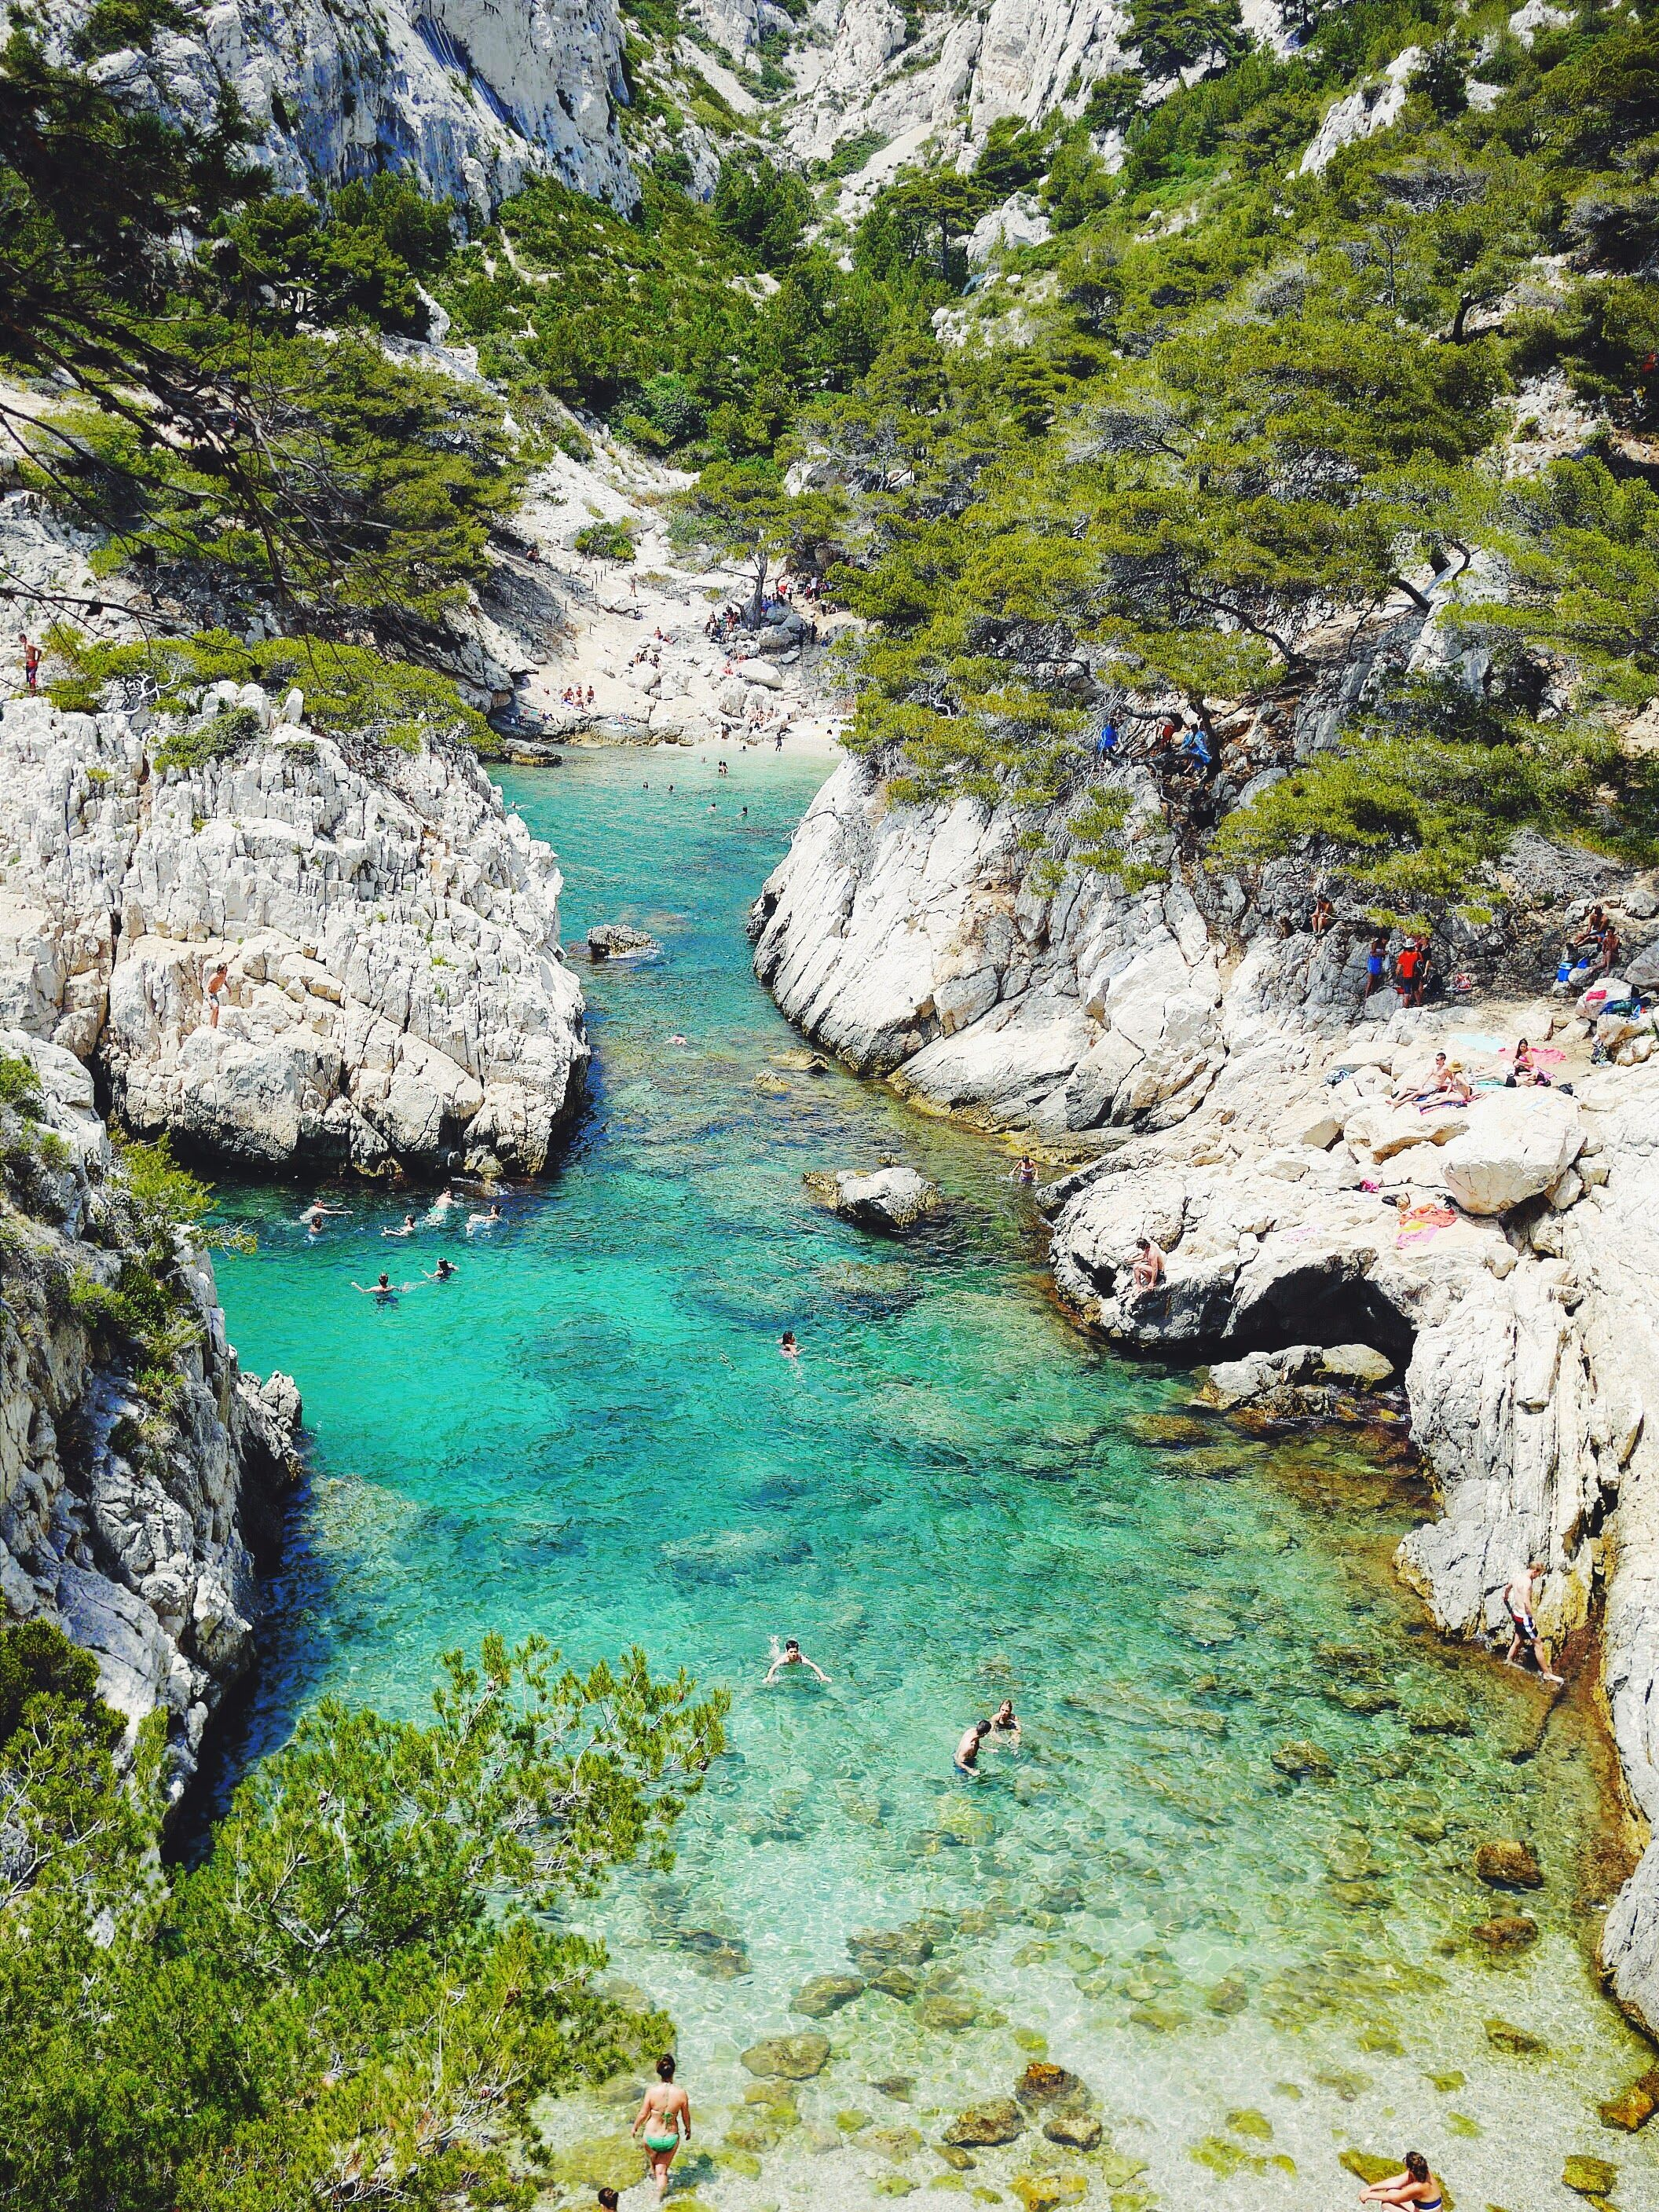 les calanques near marseille france things to do pinterest marseille national park tours. Black Bedroom Furniture Sets. Home Design Ideas